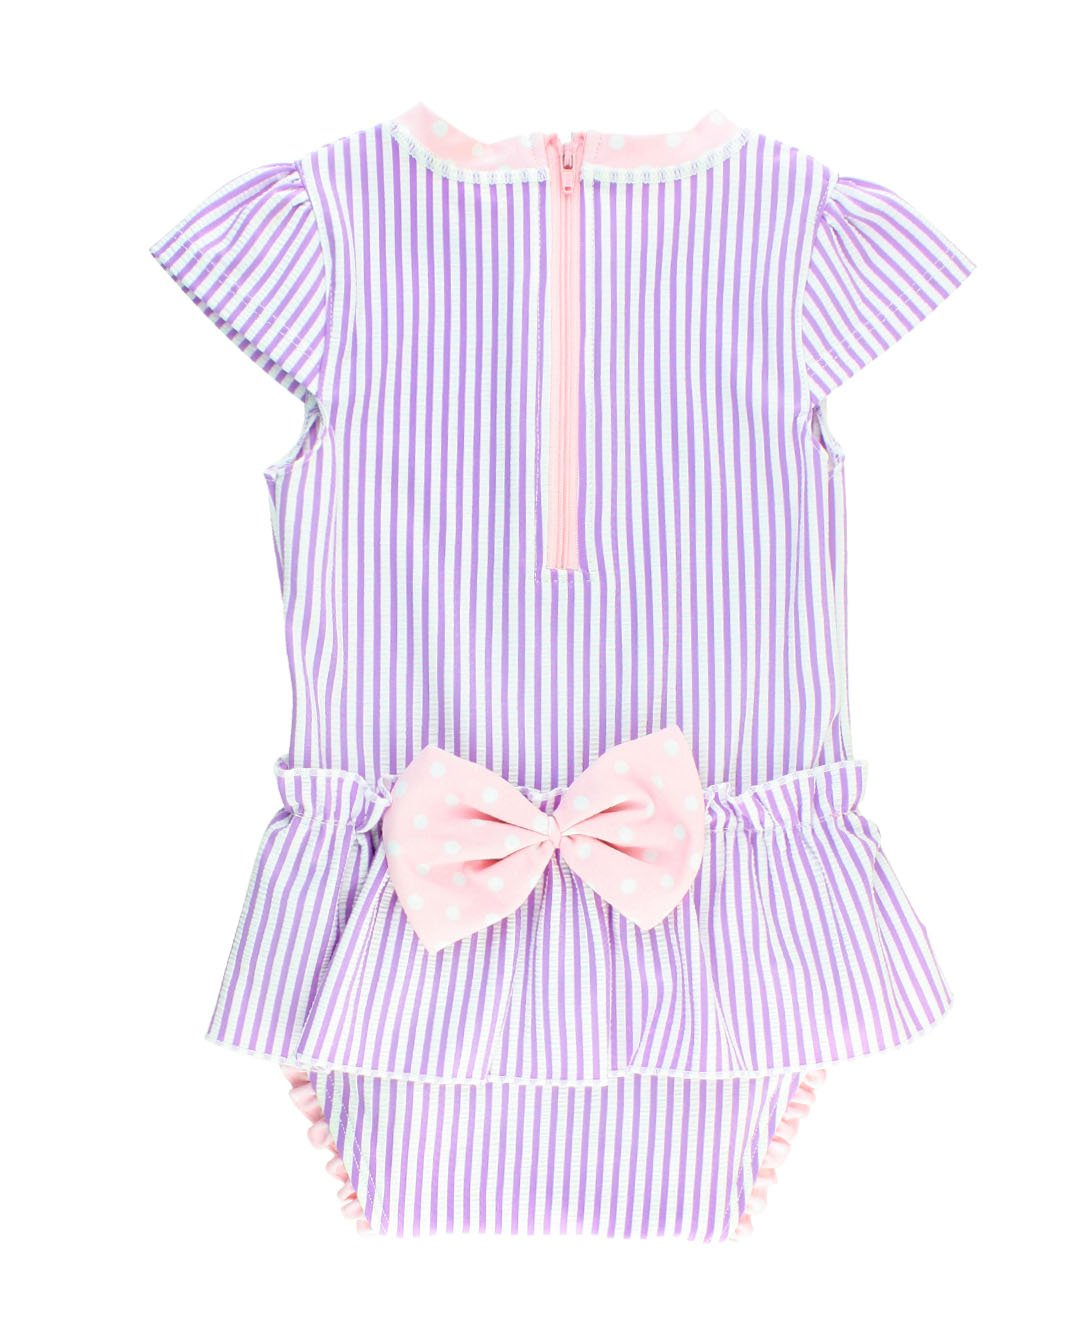 RuffleButts Little Girls Peplum Skirt One Piece Rash Guard Swimsuit - Lilac Seersucker - 2T